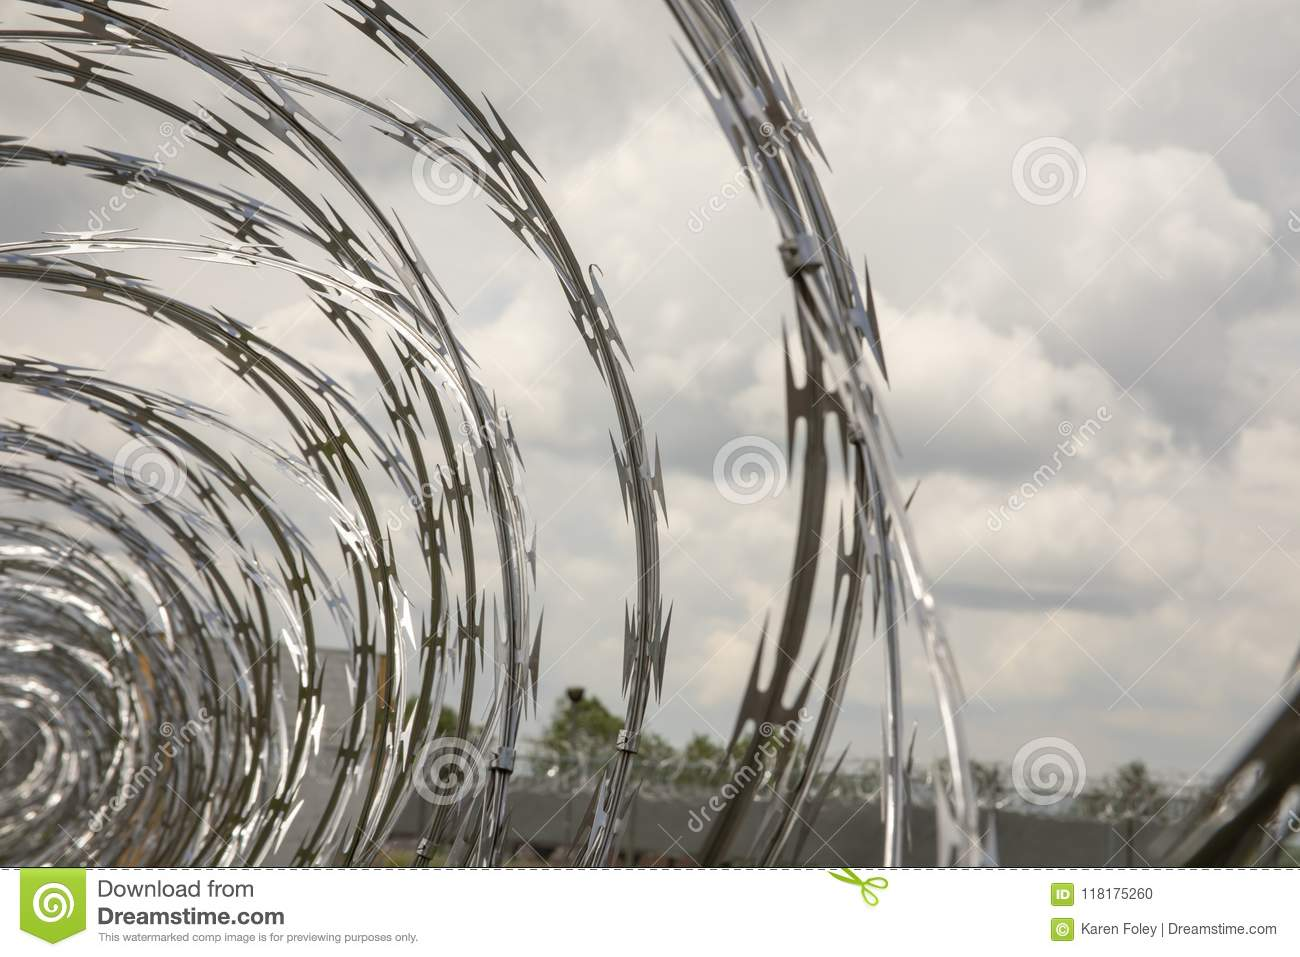 Coils Of Razor Wire On Fence Stock Photo - Image of america ...